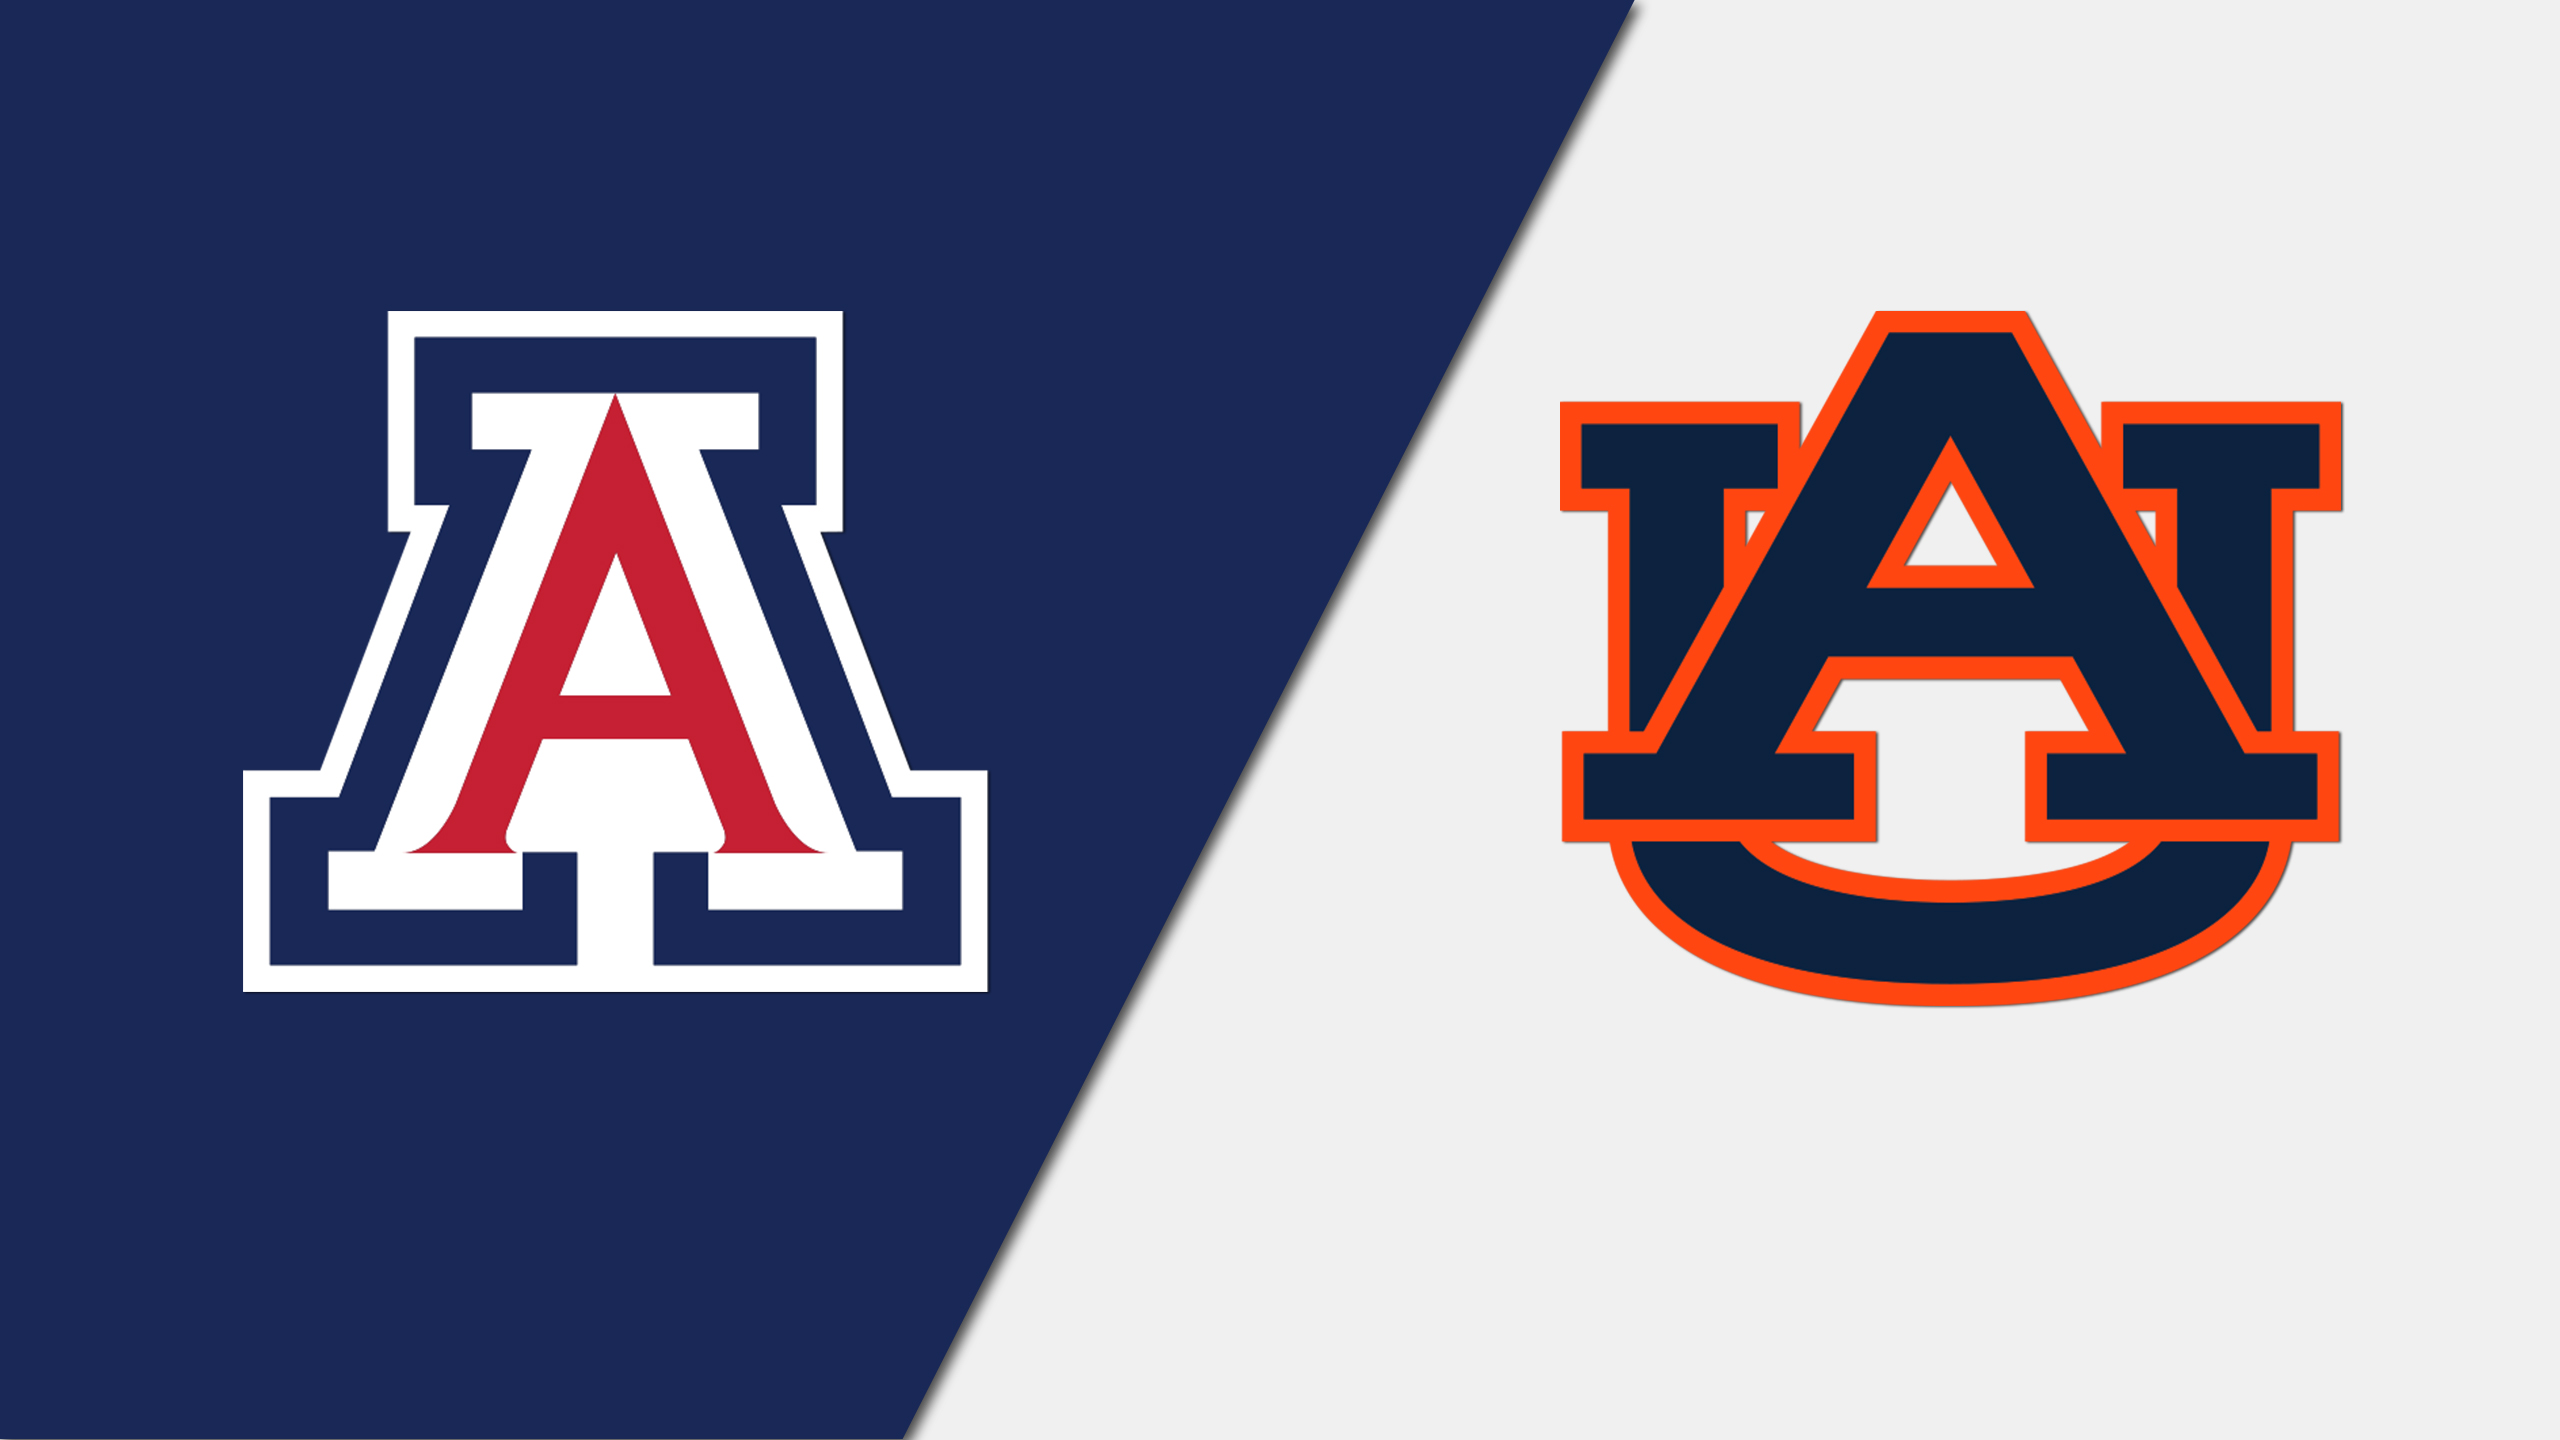 Arizona vs. Auburn (Site 5 / Game 6)